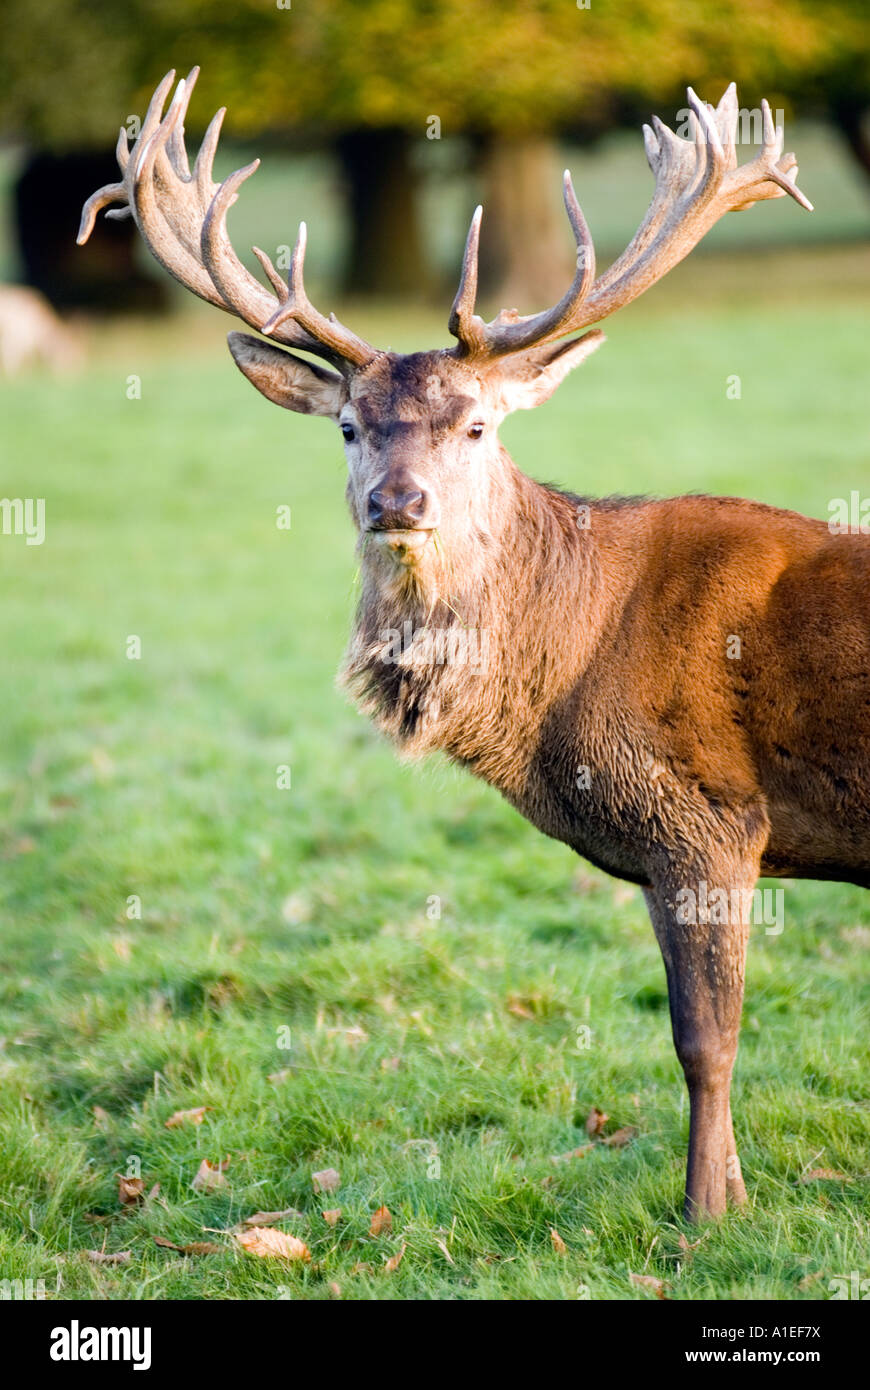 Stag at Woburn Safari Park Bedfordshire England UK forest Centre Parcs. Picture taken from a public footpath. - Stock Image